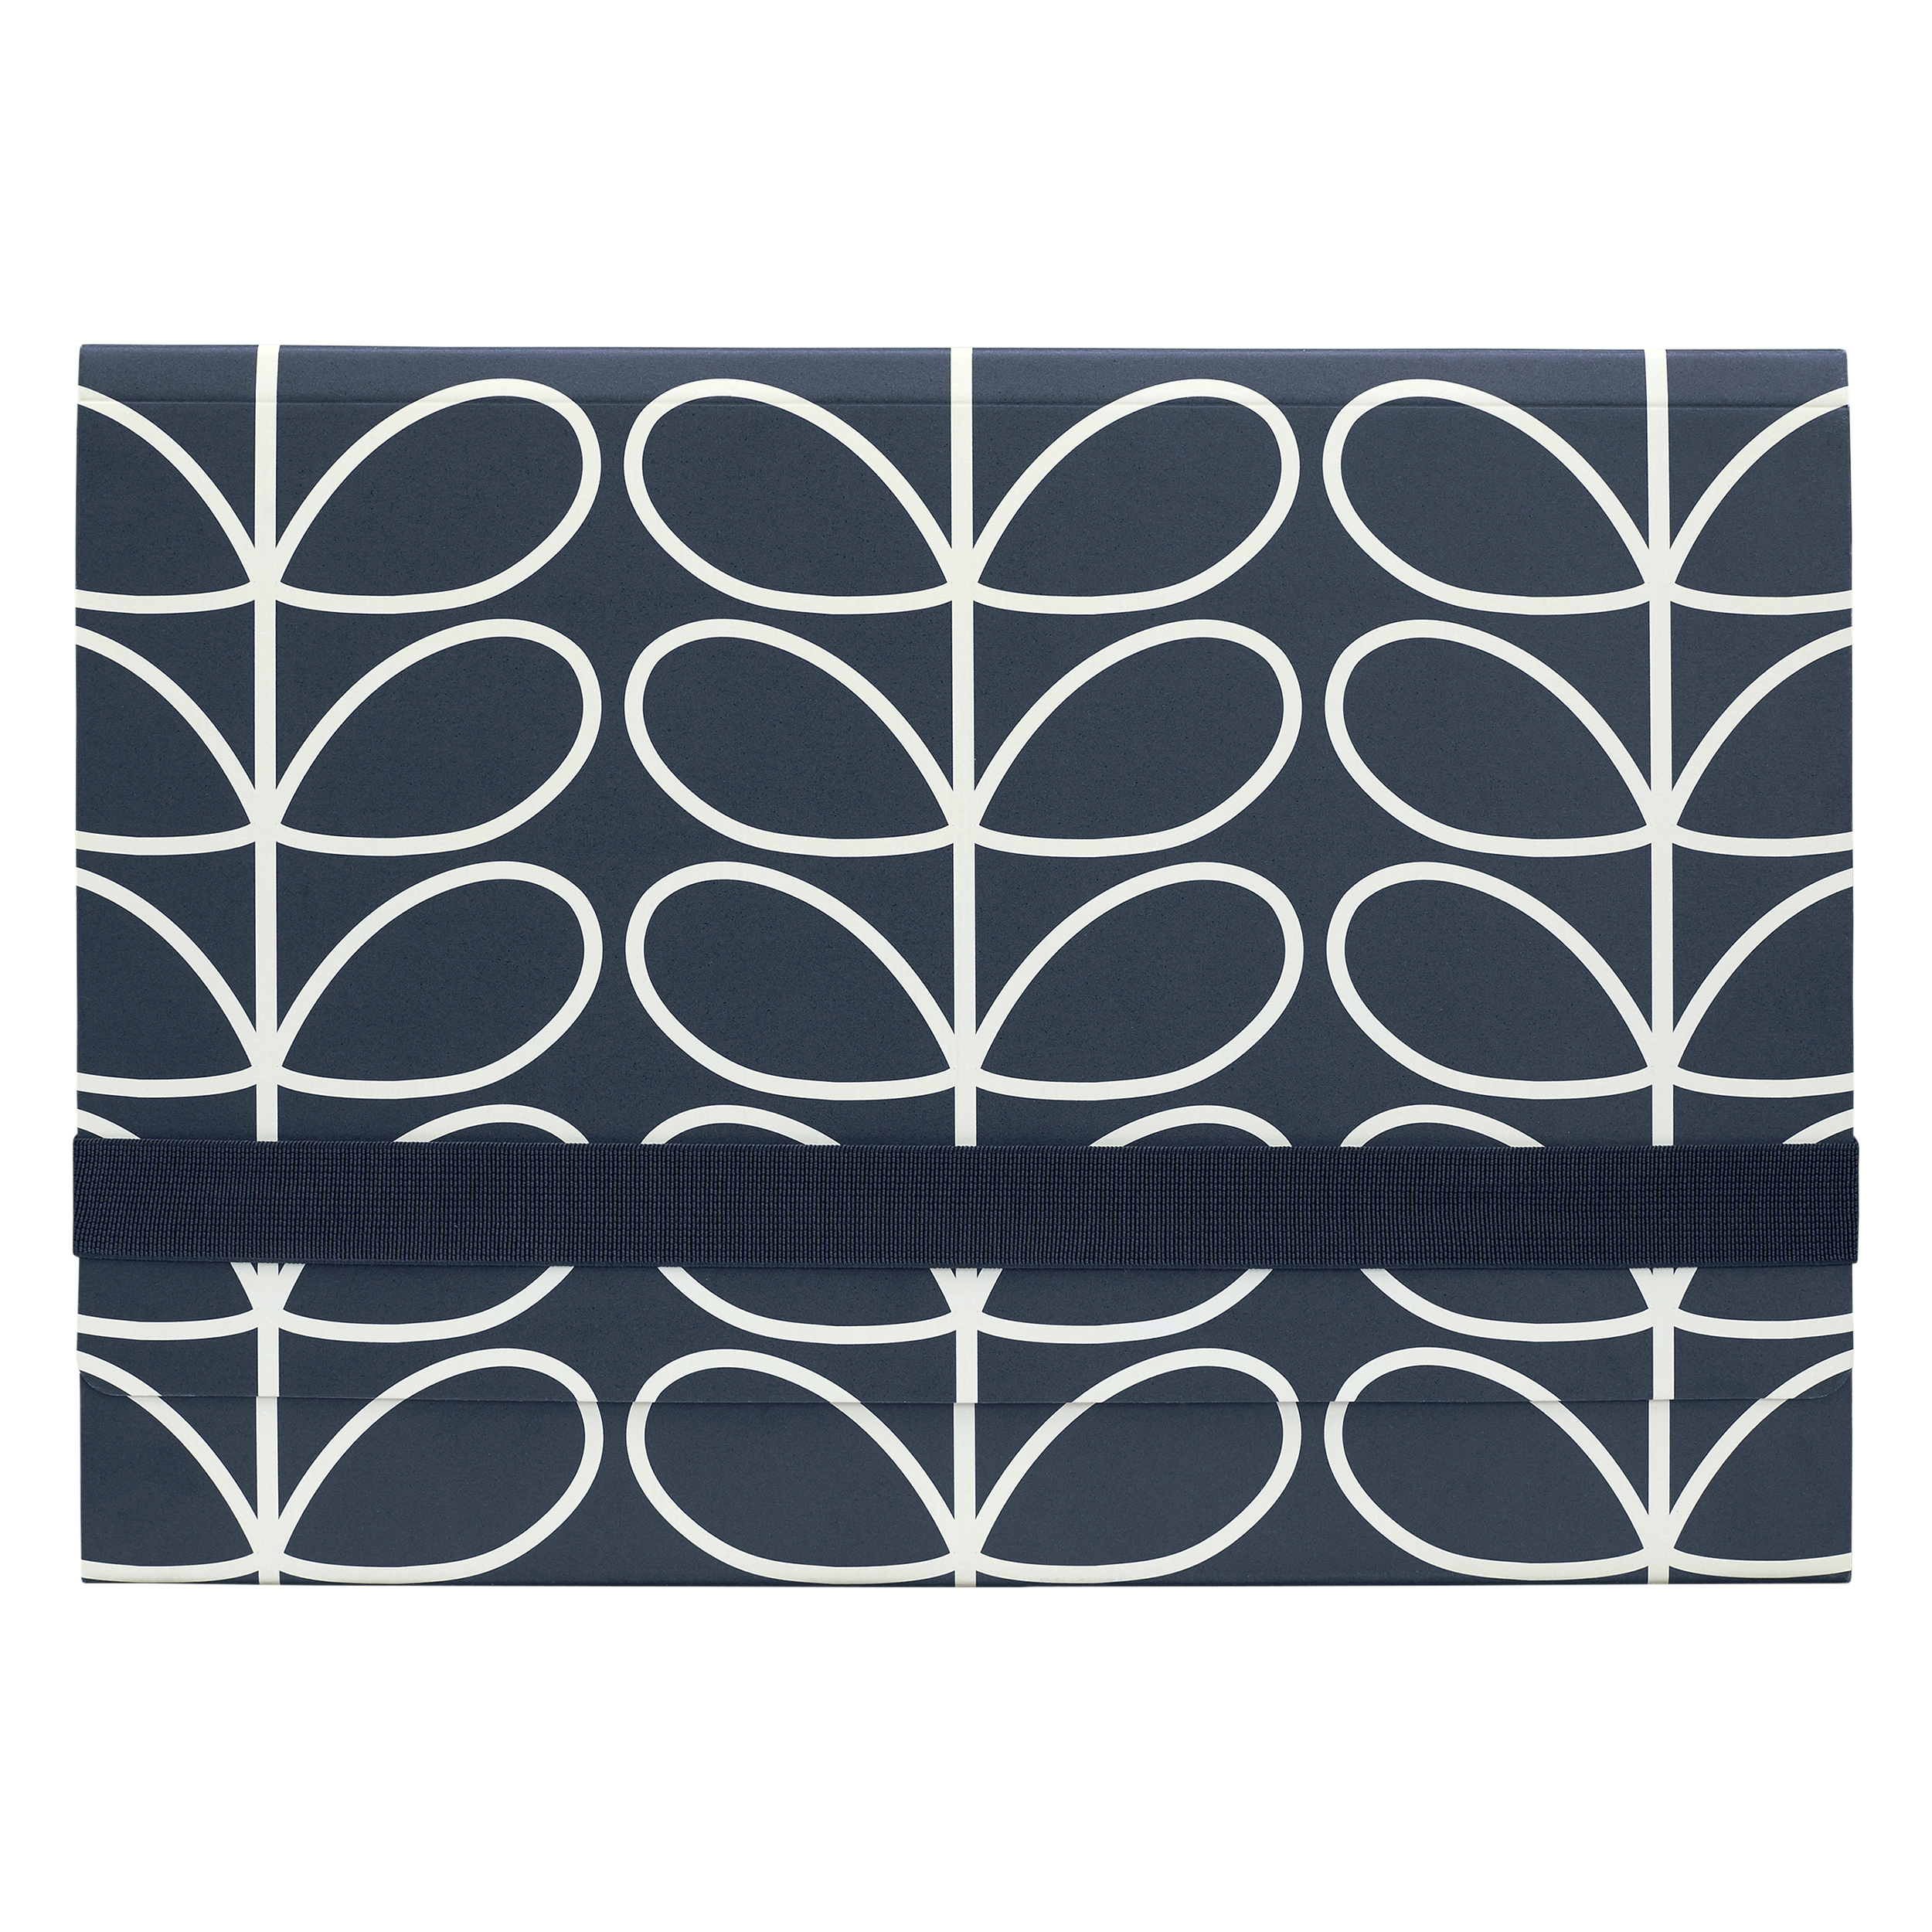 A4 Document Holder – Linear Stem Navy